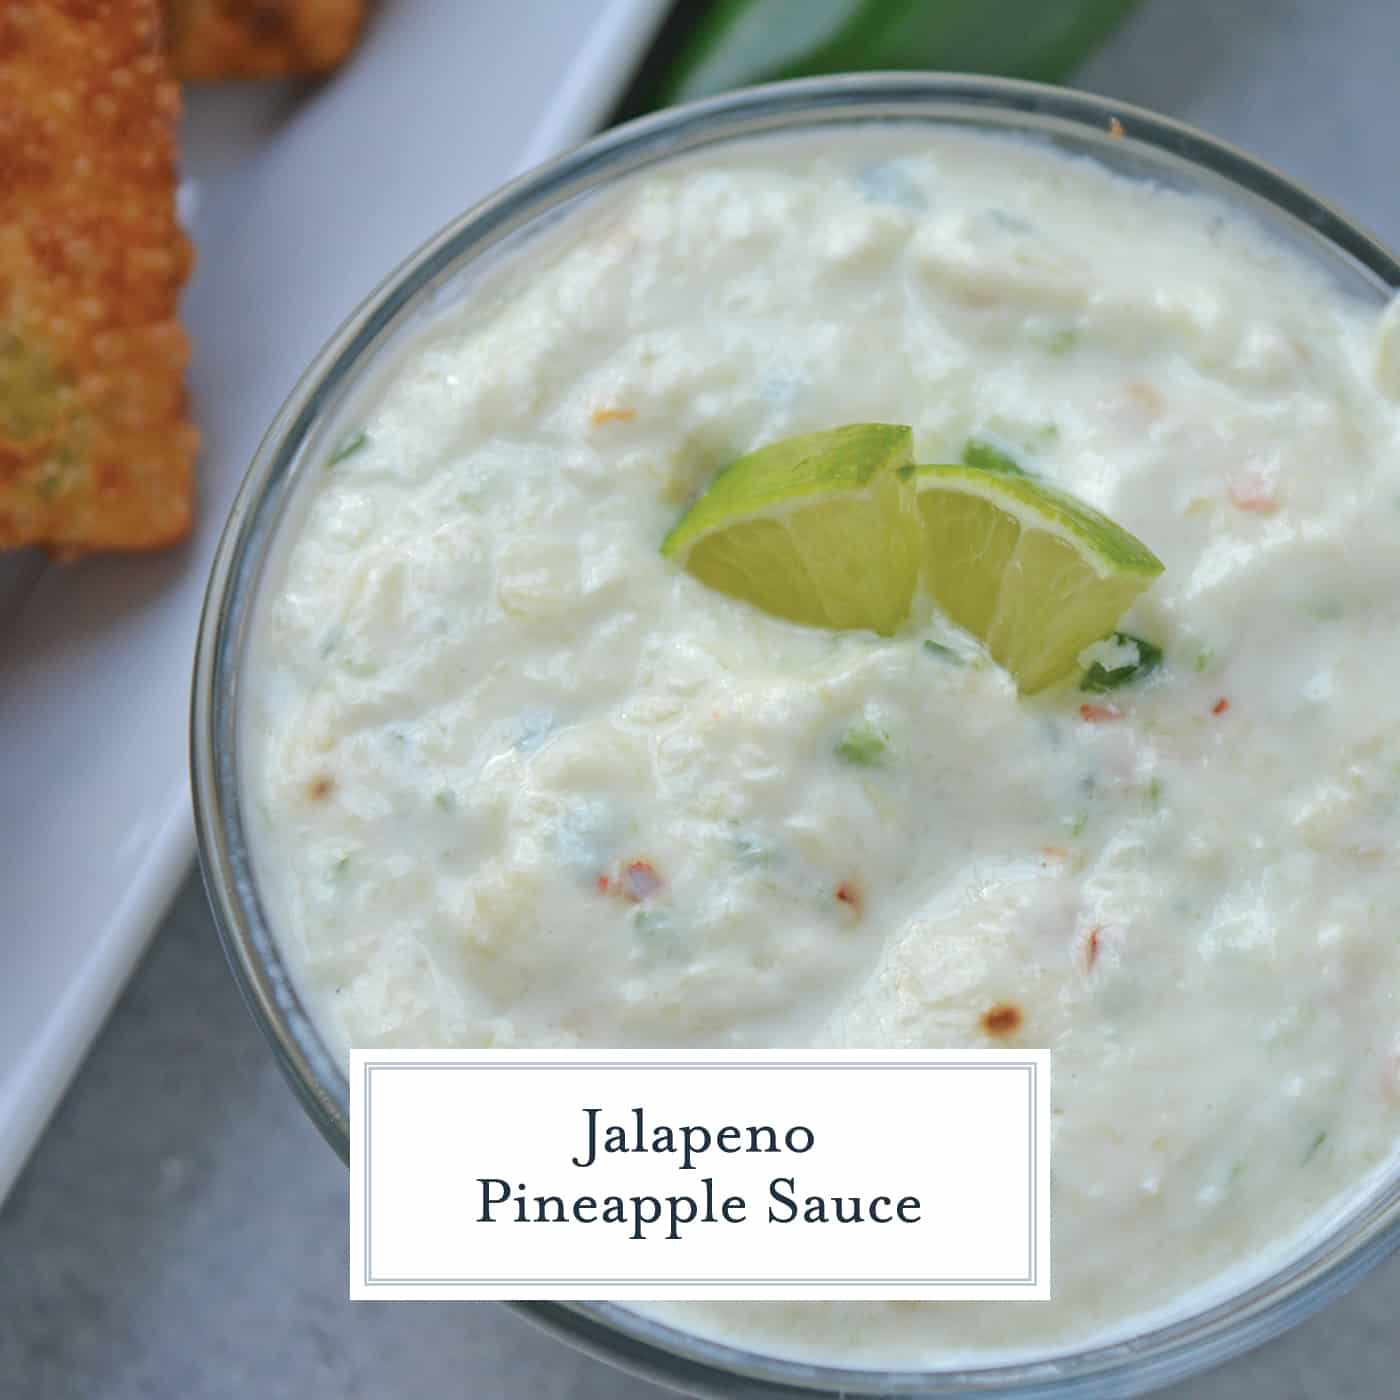 Jalapeno Pineapple Sauce is a cool and spicy dipping sauce recipe. Perfect for crab rangoons, onion rings, grilled vegetables and more! #pineappledippingsauce www.savoryexperiments.com